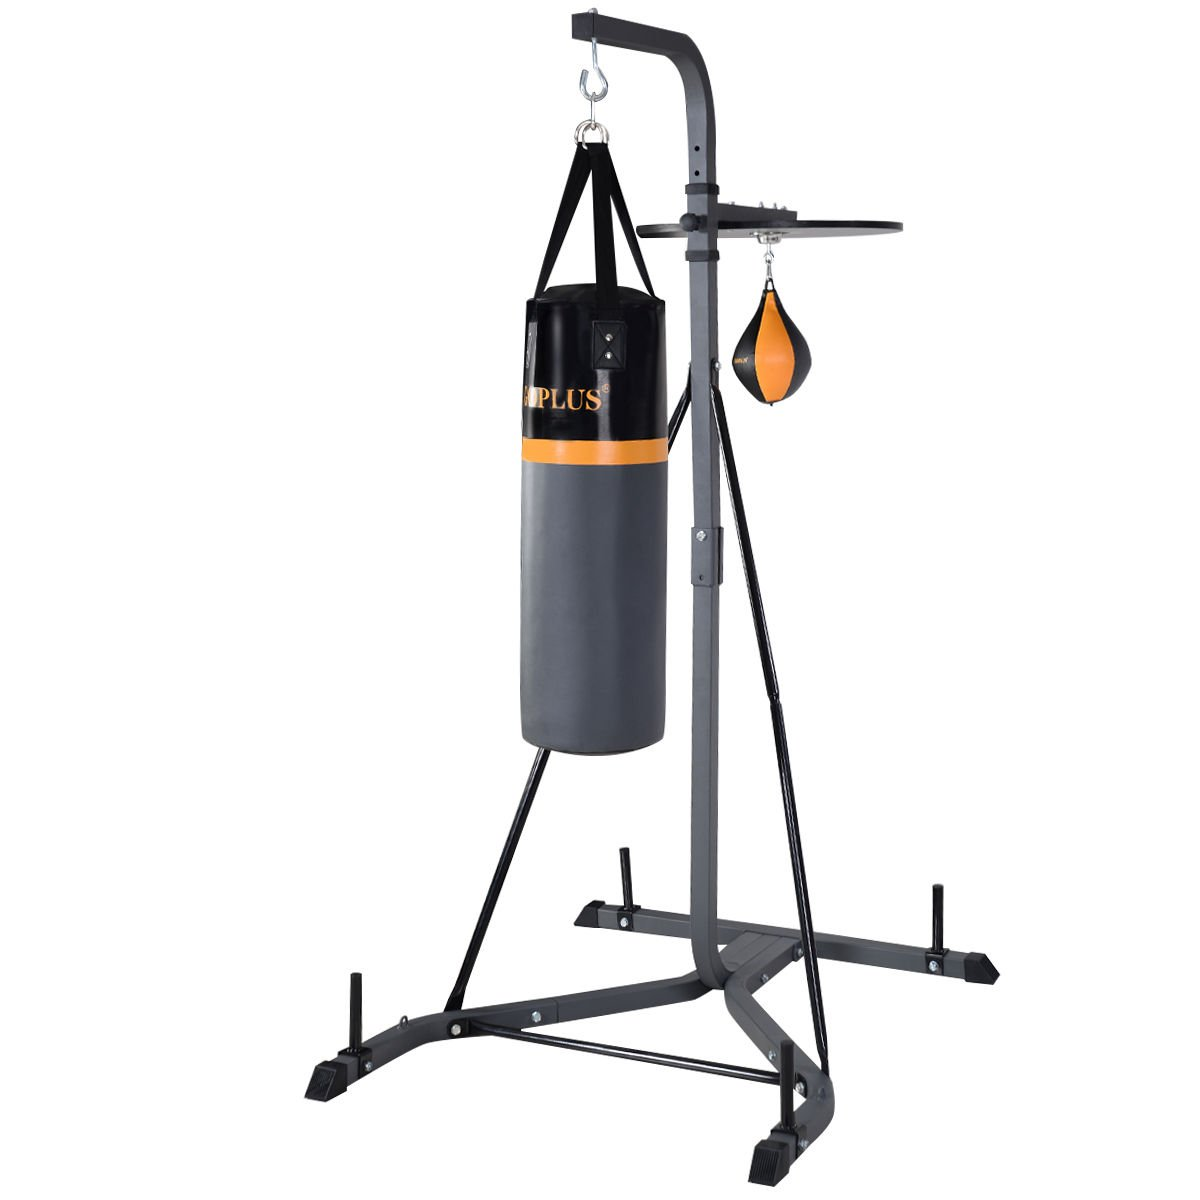 Goplus 2 IN 1 Punching Bag Wall Bracket Steel Mount Hanging Stand Boxing Frame